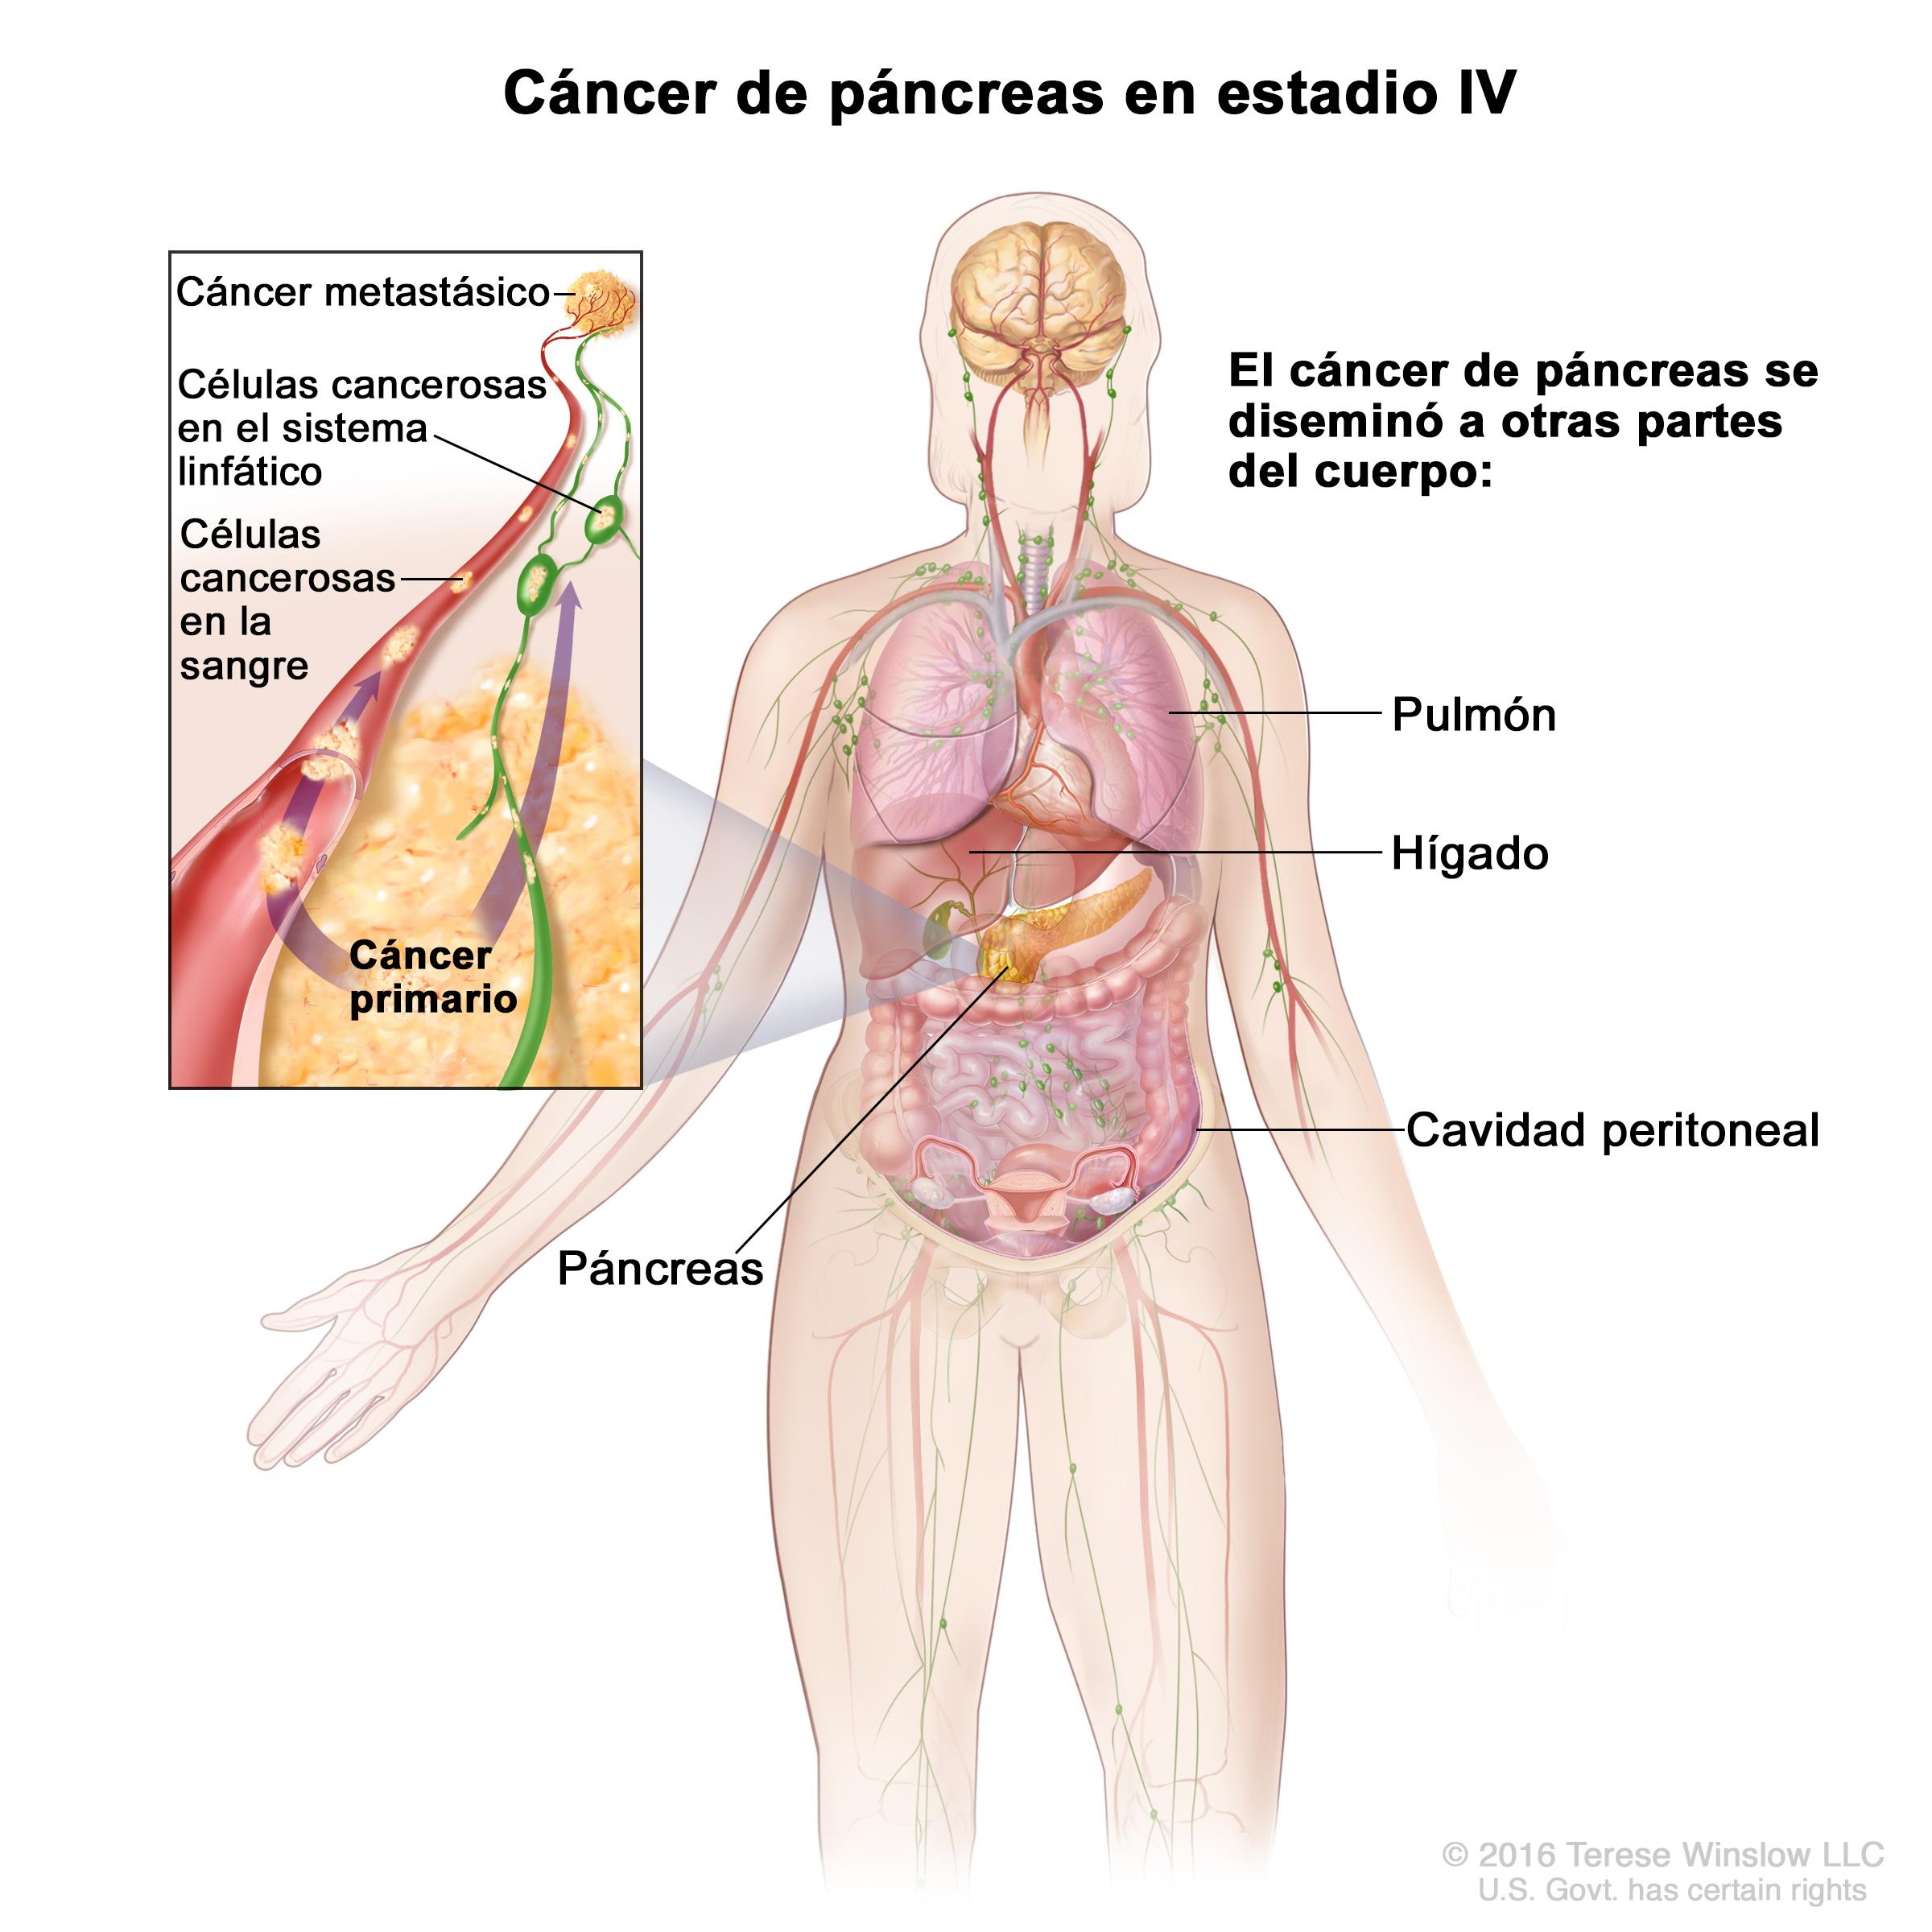 cancer de pancreas metastasis higado il papilloma virus guarisce